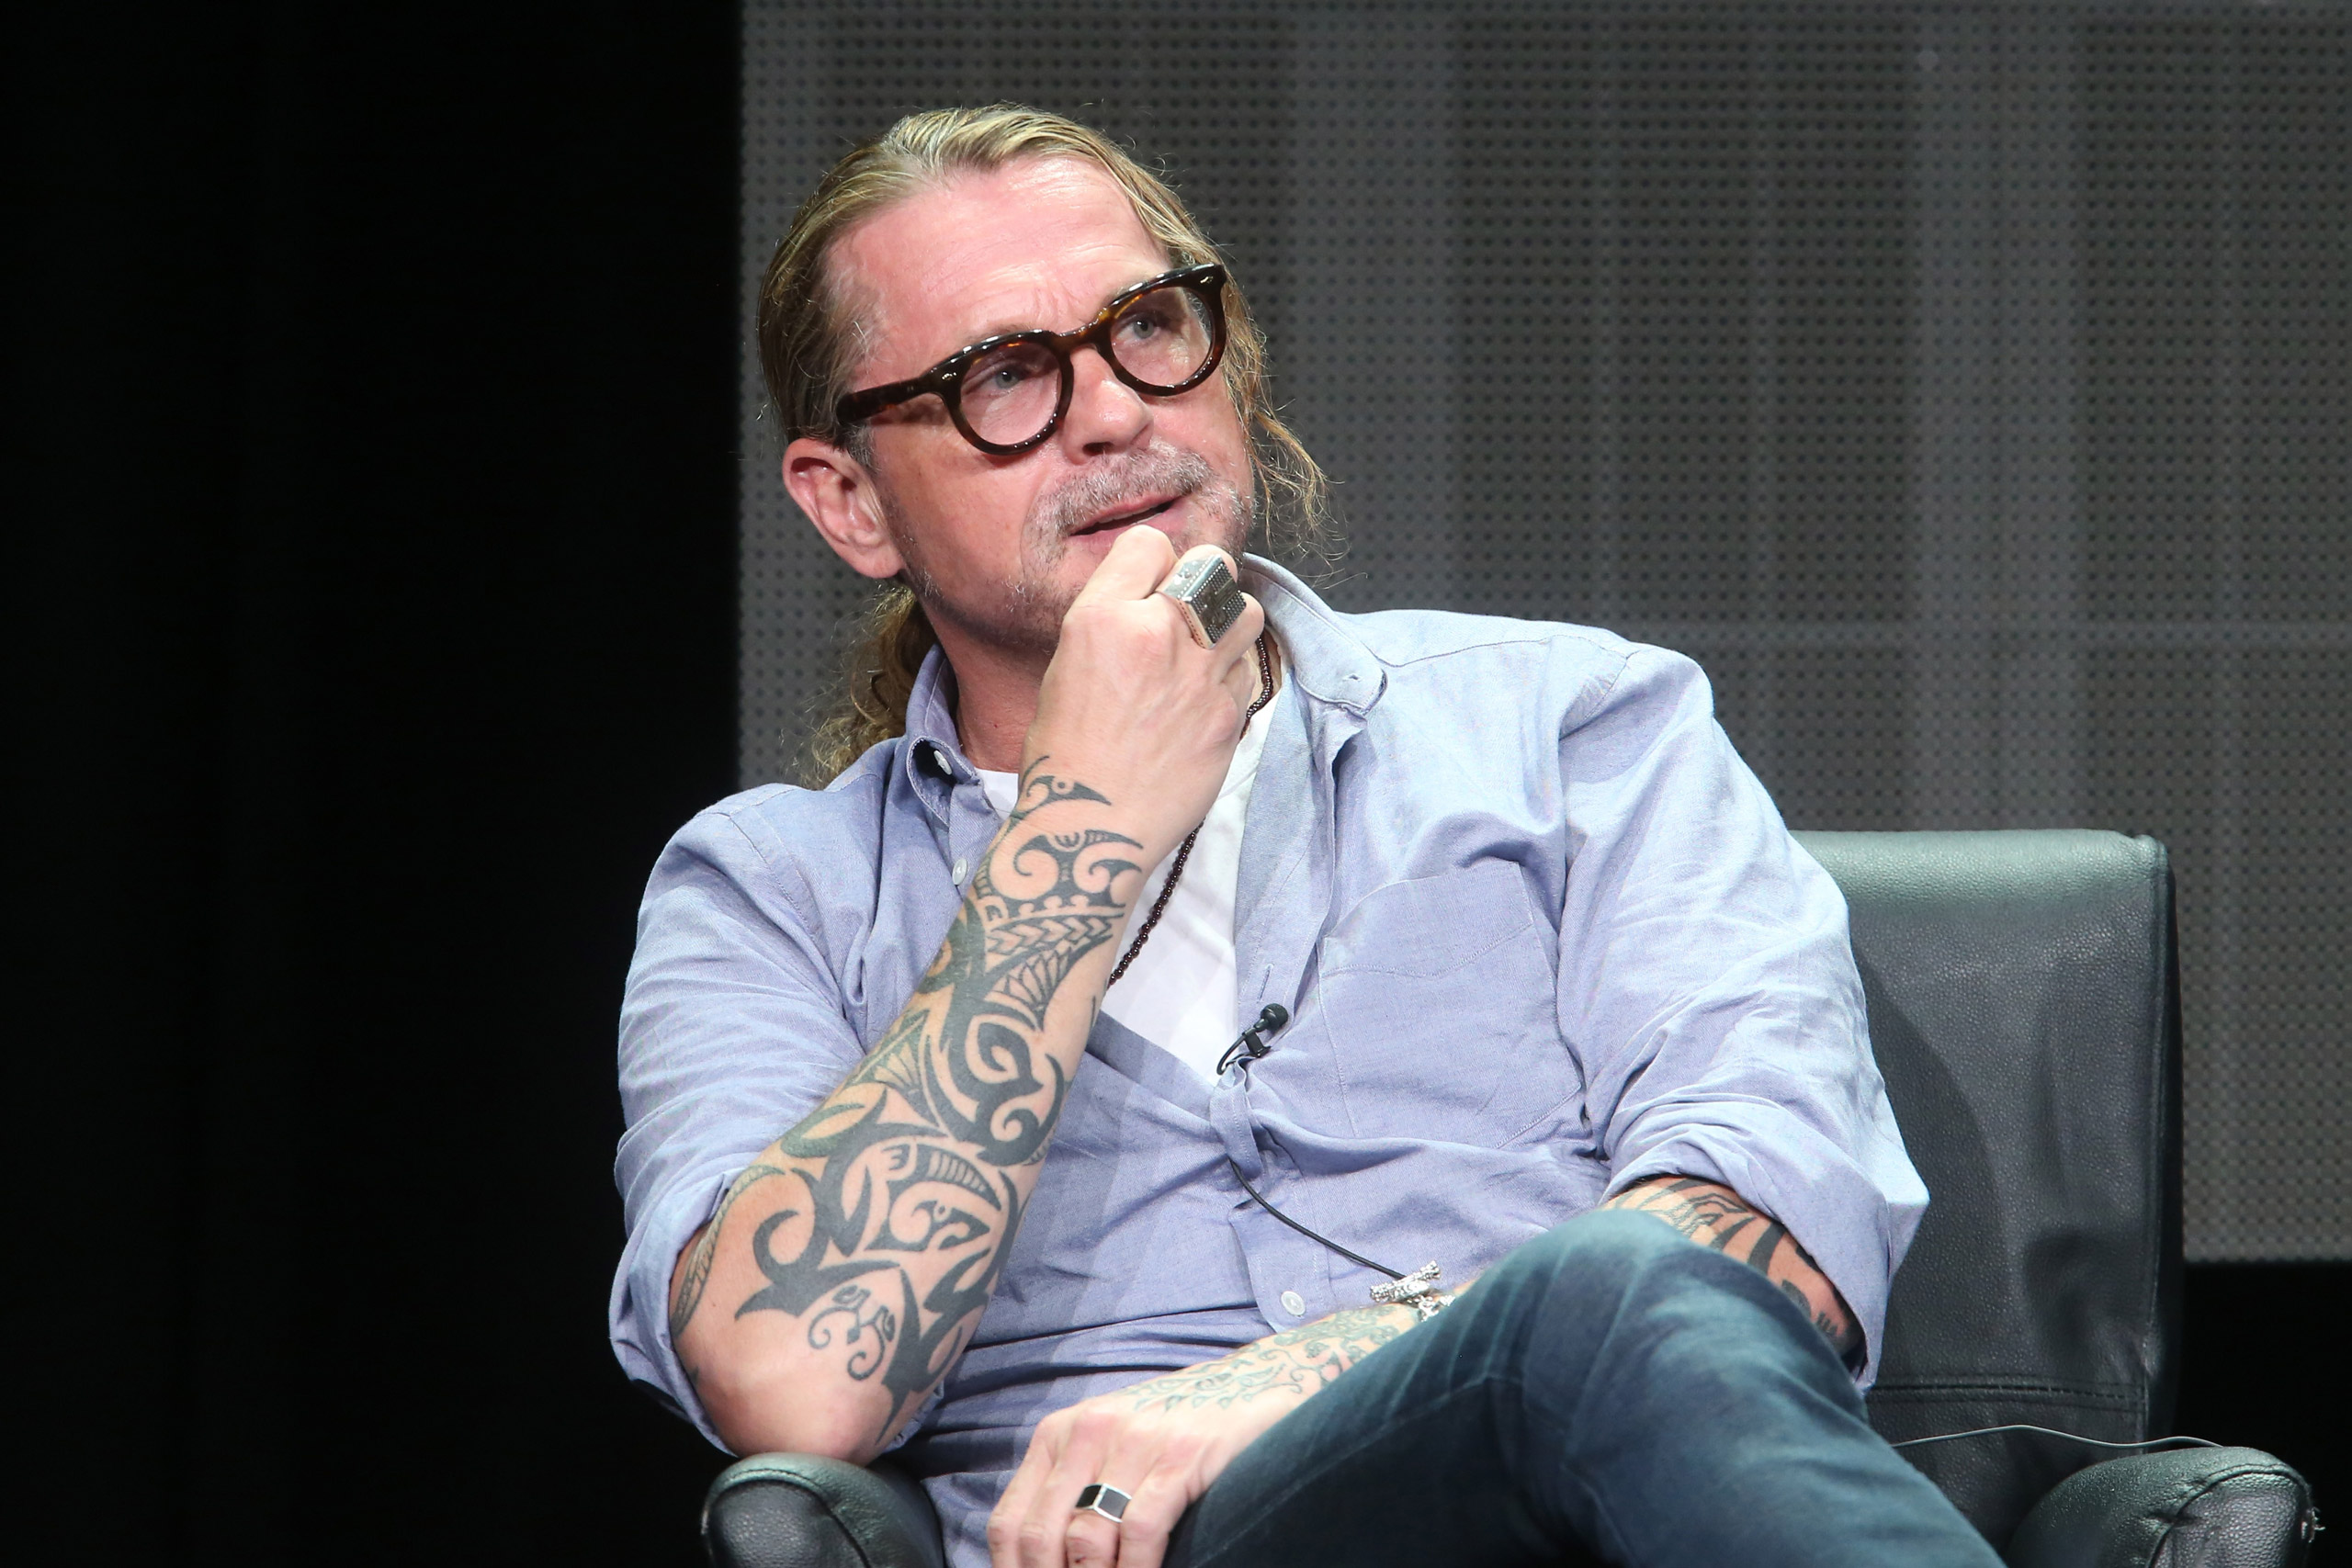 Kurt Sutter speaks onstage during 'The Bastard Executioner' panel discussion at the FX portion of the 2015 Summer TCA Tour in Beverly Hills on August 7, 2015.